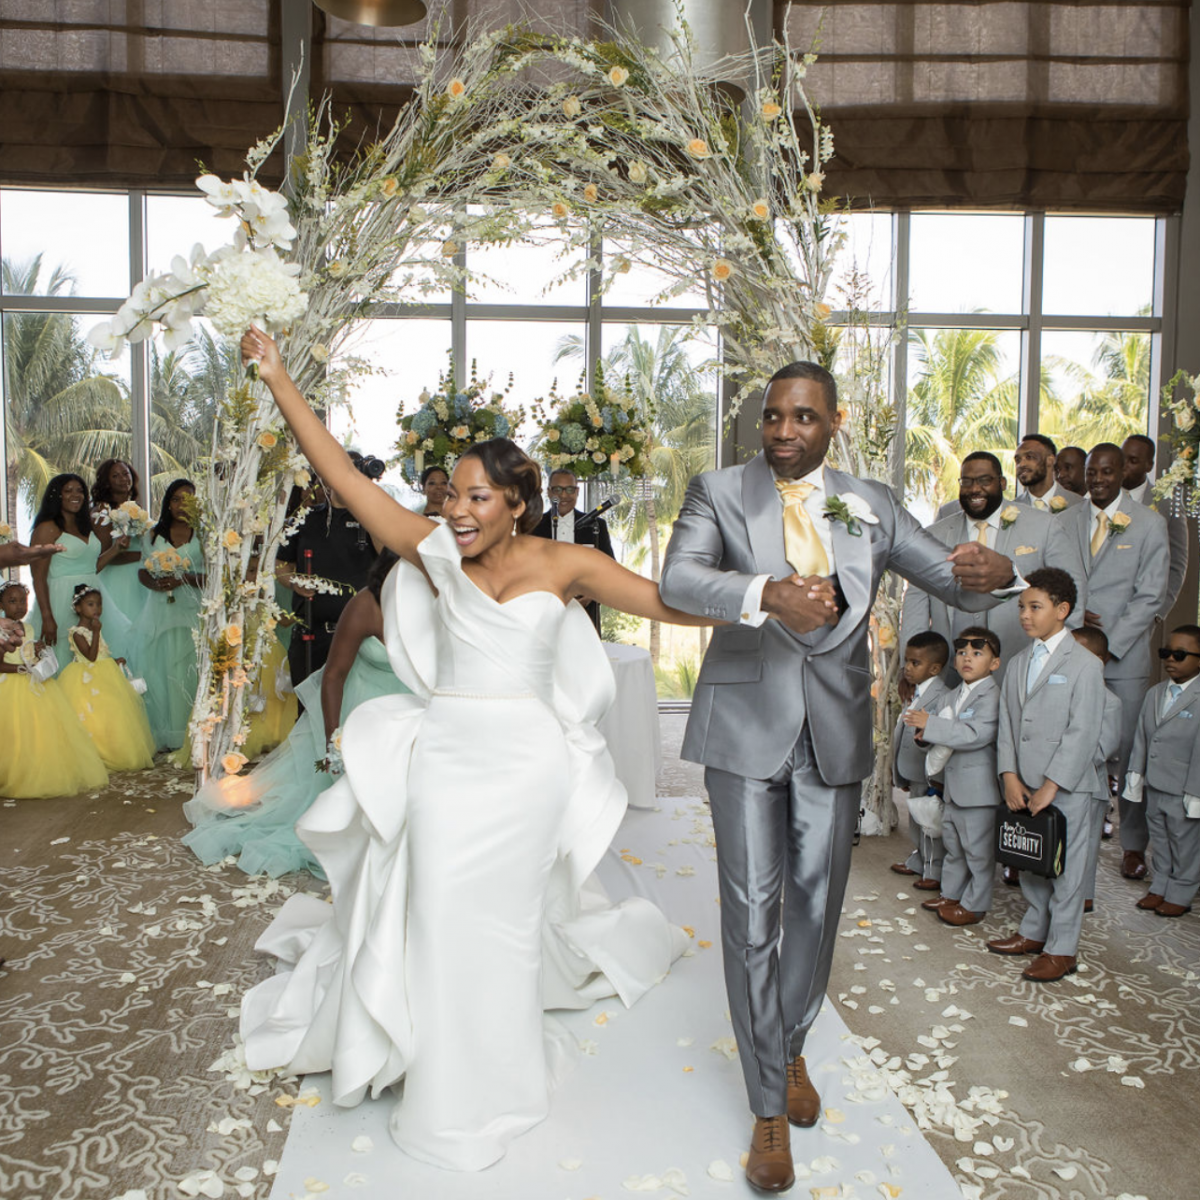 Bridal Bliss: Madeliene's Couture Wedding Dress Almost Stopped Time